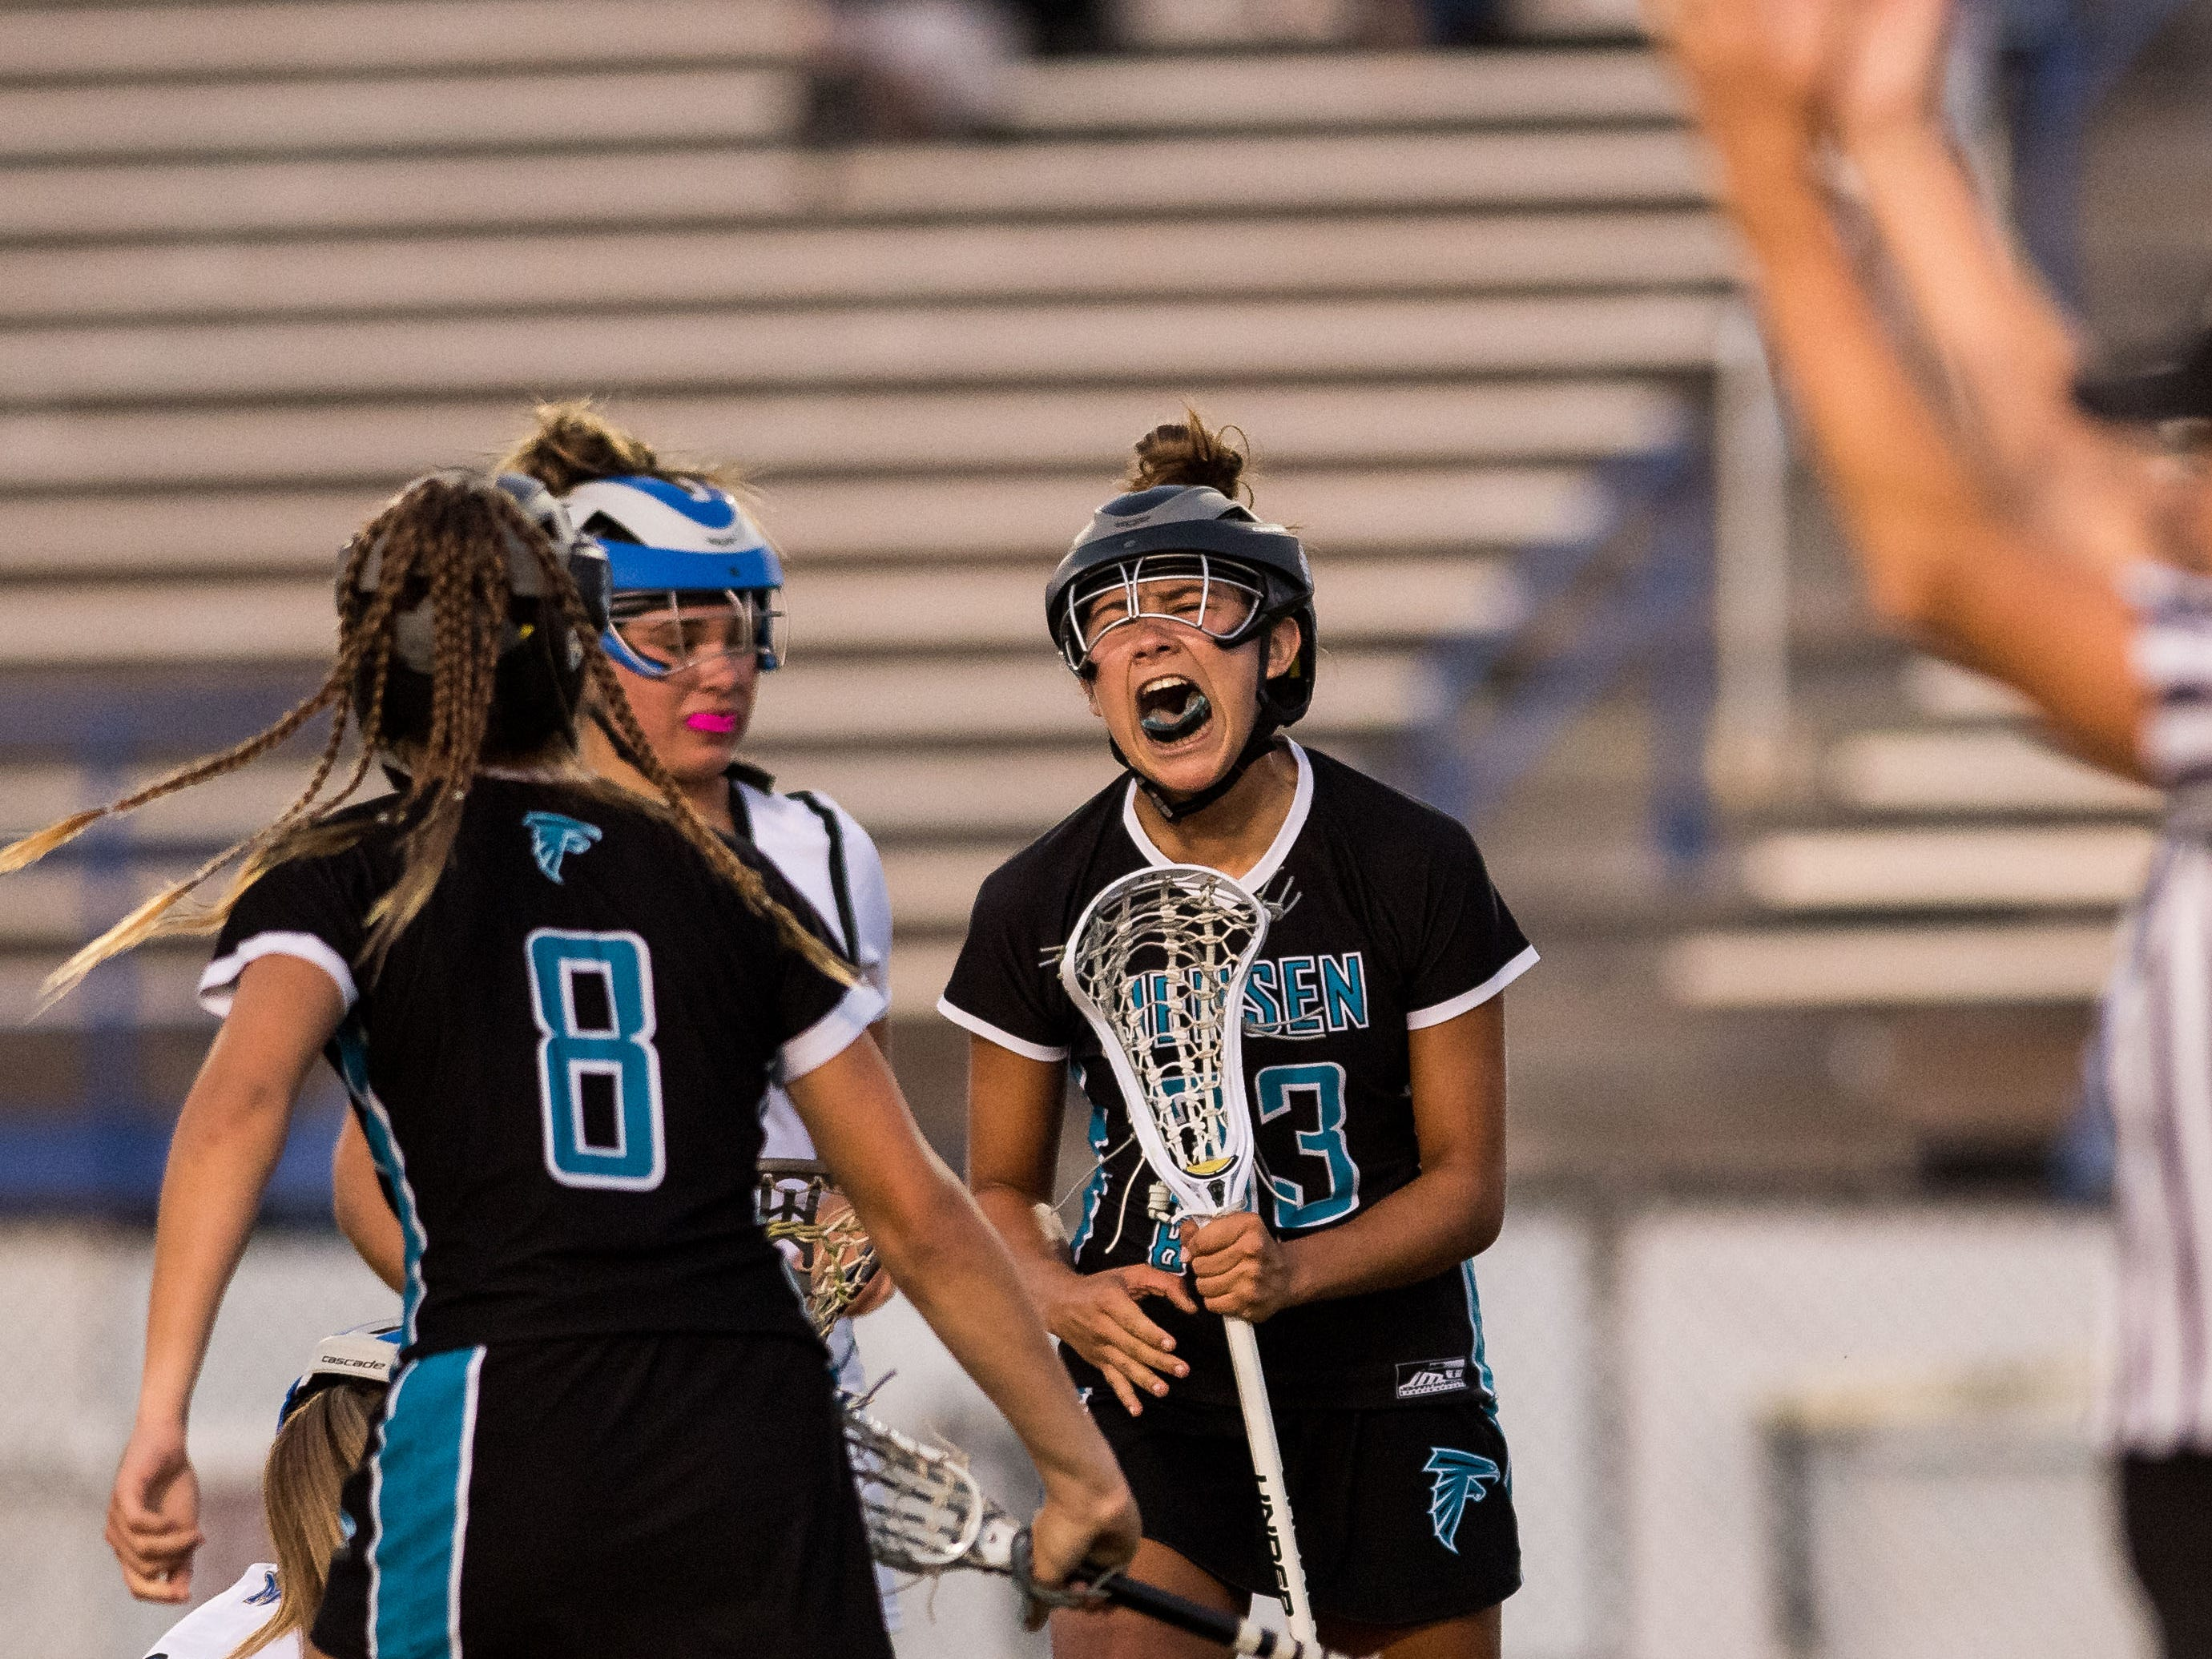 Jensen Beach's Sandy Edwards yells out after scoring the tying goal during a rally in the second half against Martin County at the high school girls lacrosse game Thursday, March 21, 2019, at Martin County High School in Stuart. Martin County jumped back ahead in the final minutes to beat Jensen Beach, 14-12.